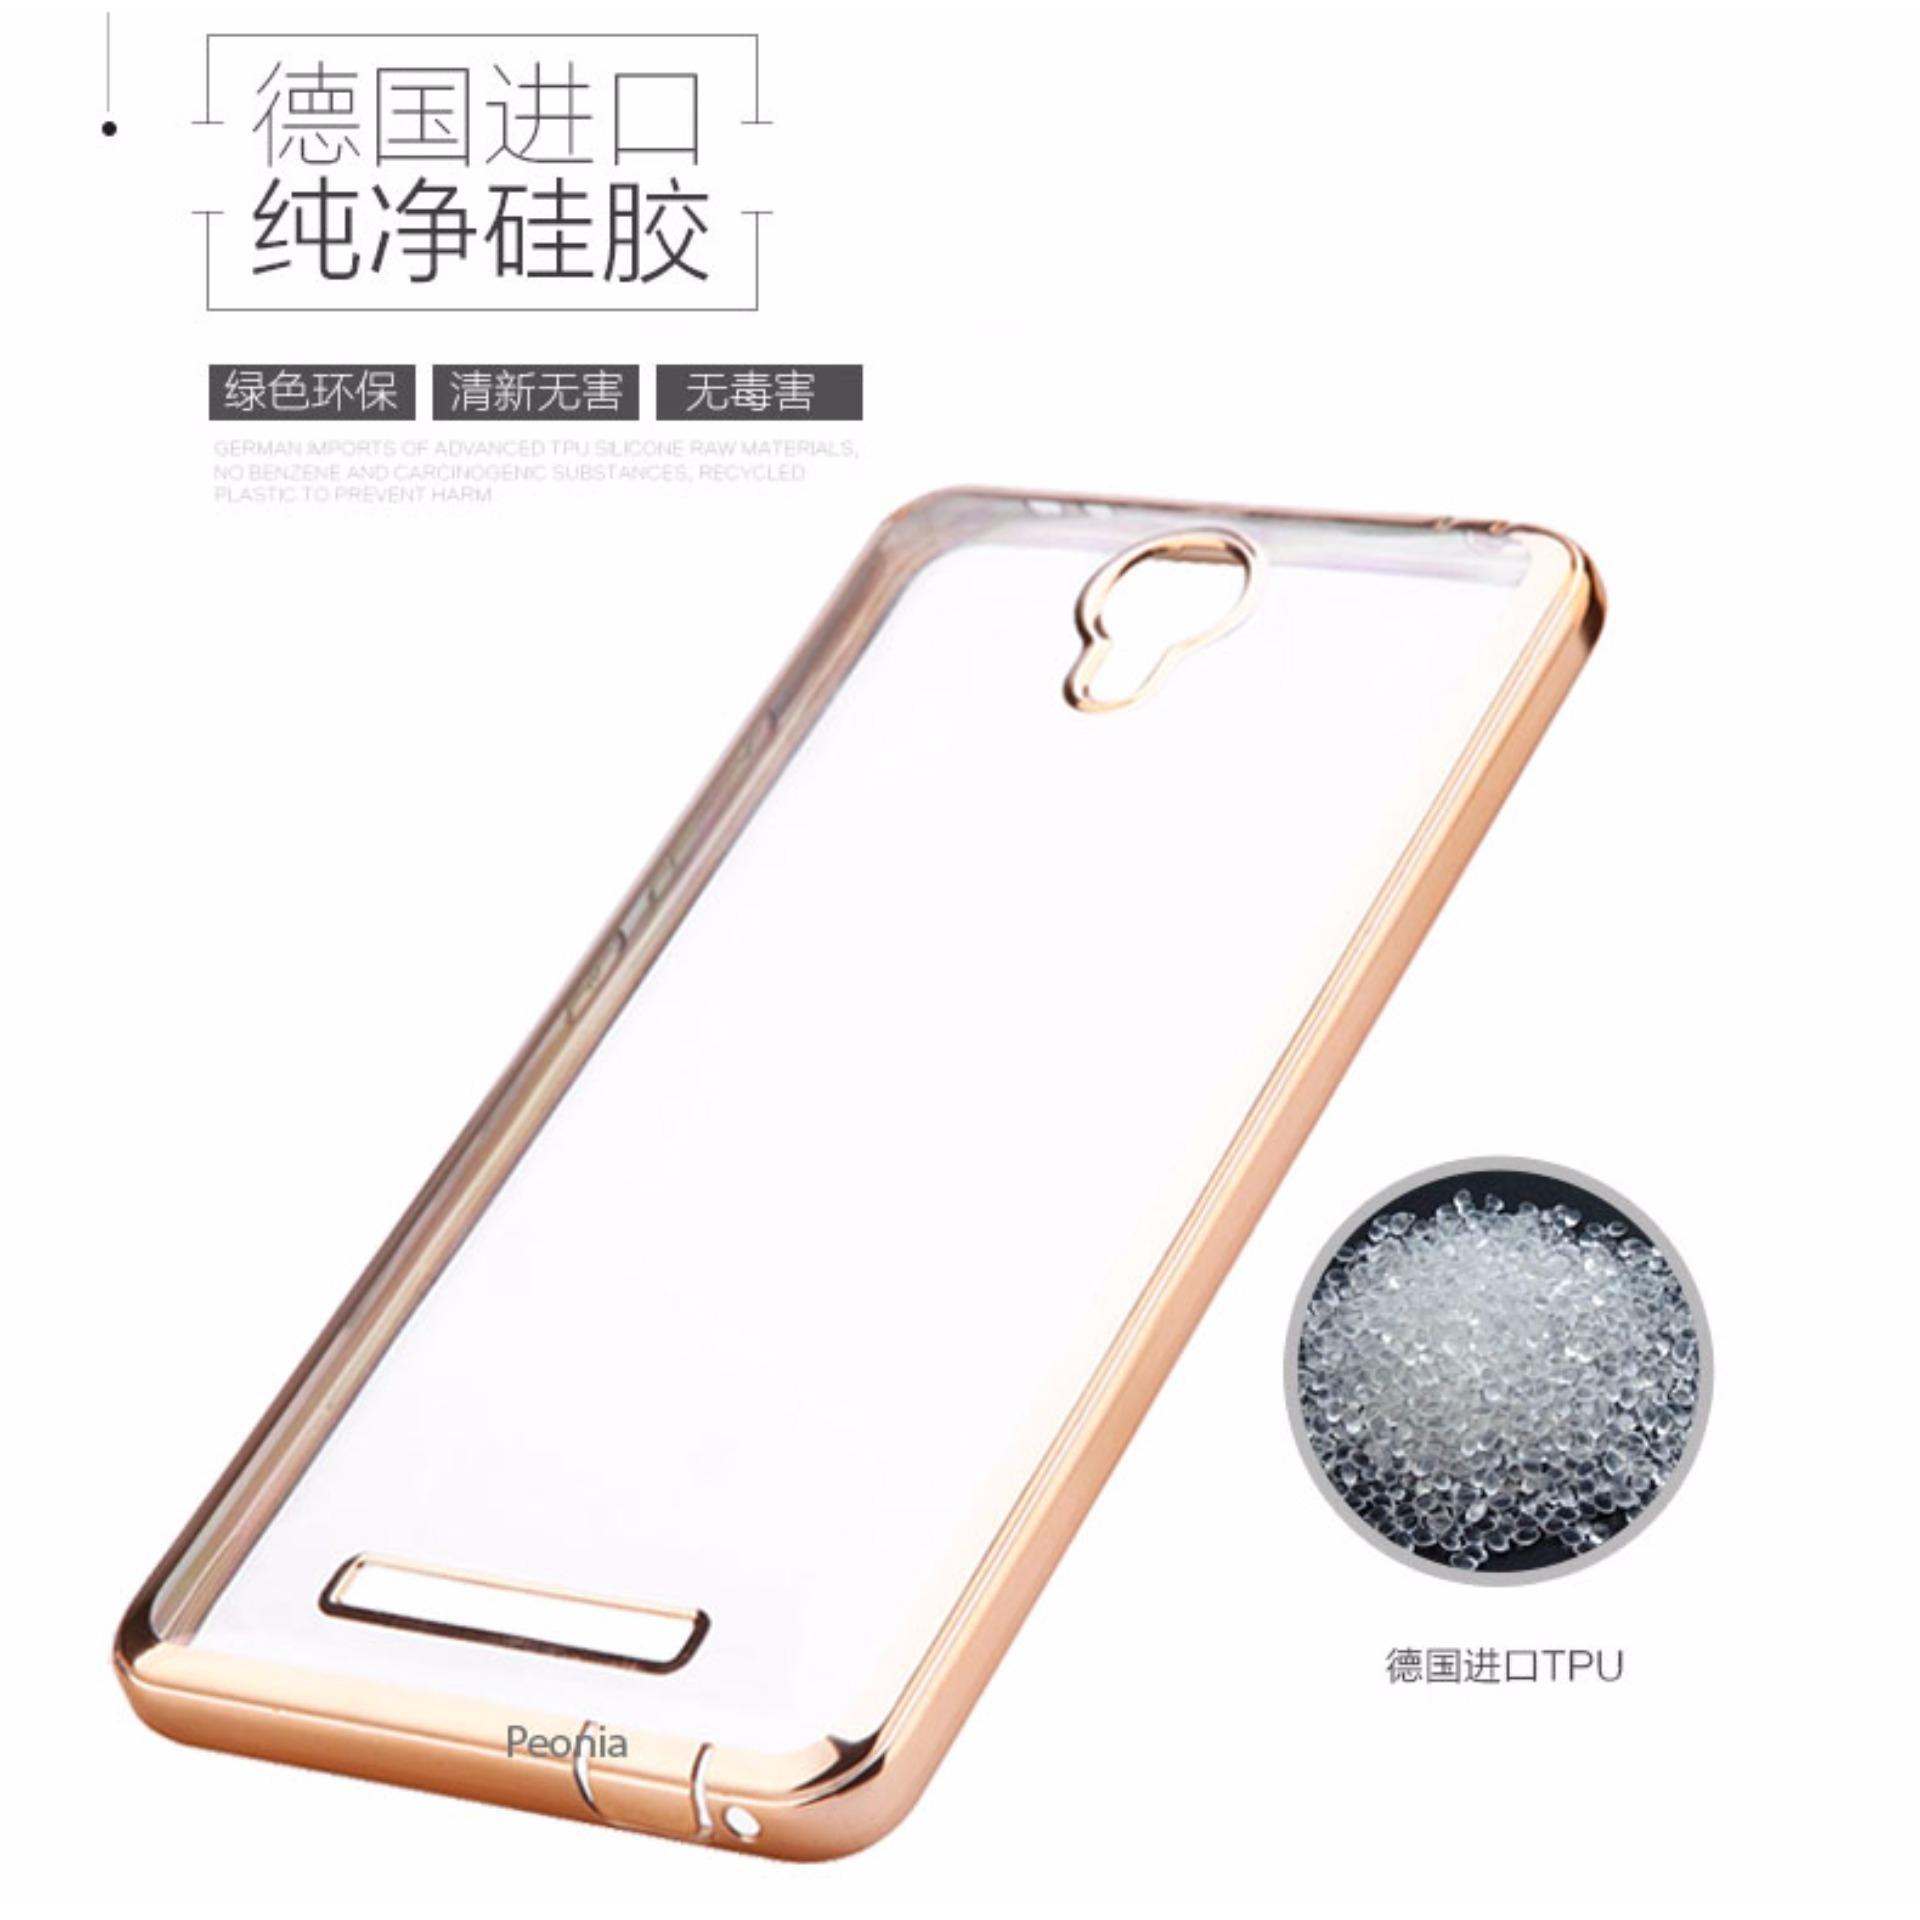 Peonia Aircase Ultrathin Luxury Plating Gilded Crystal Clear Case For Redmi Note 2 .